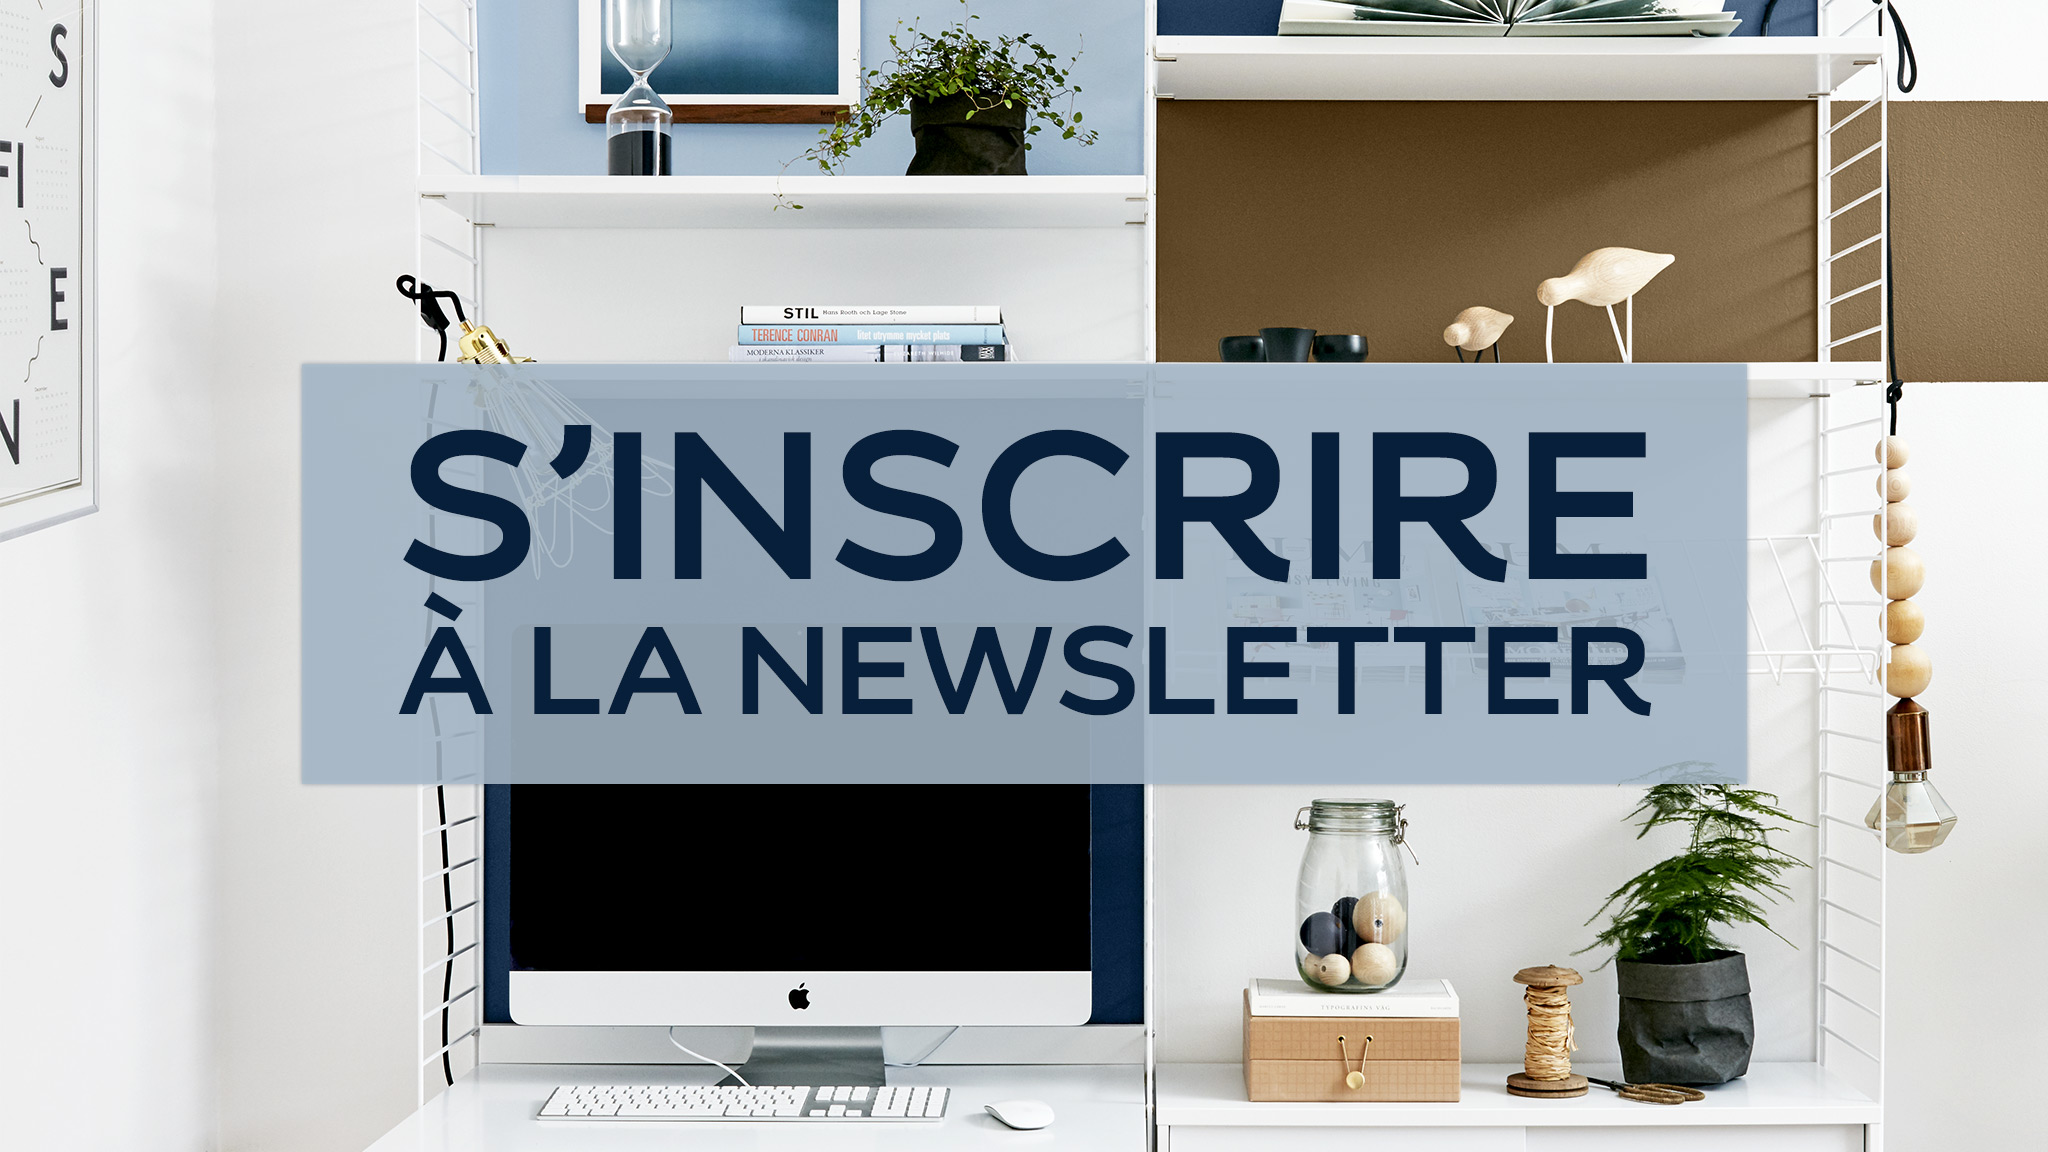 Newsletter - s'inscrire à la newsletter